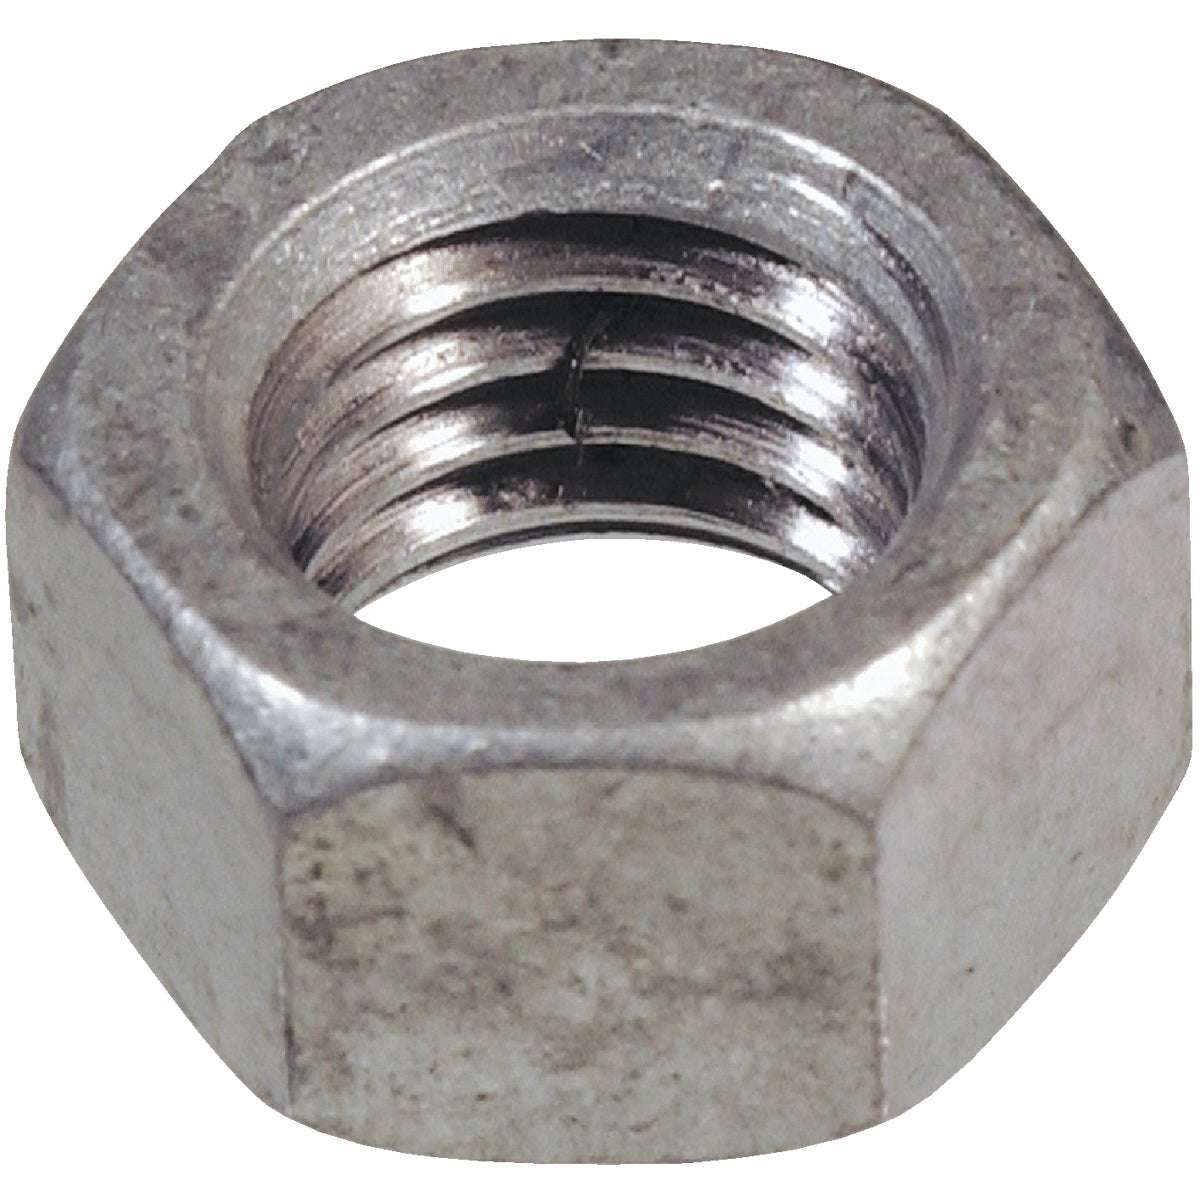 50PC 1/2-13 HEX NUT - 810512 by Hillman Fastener